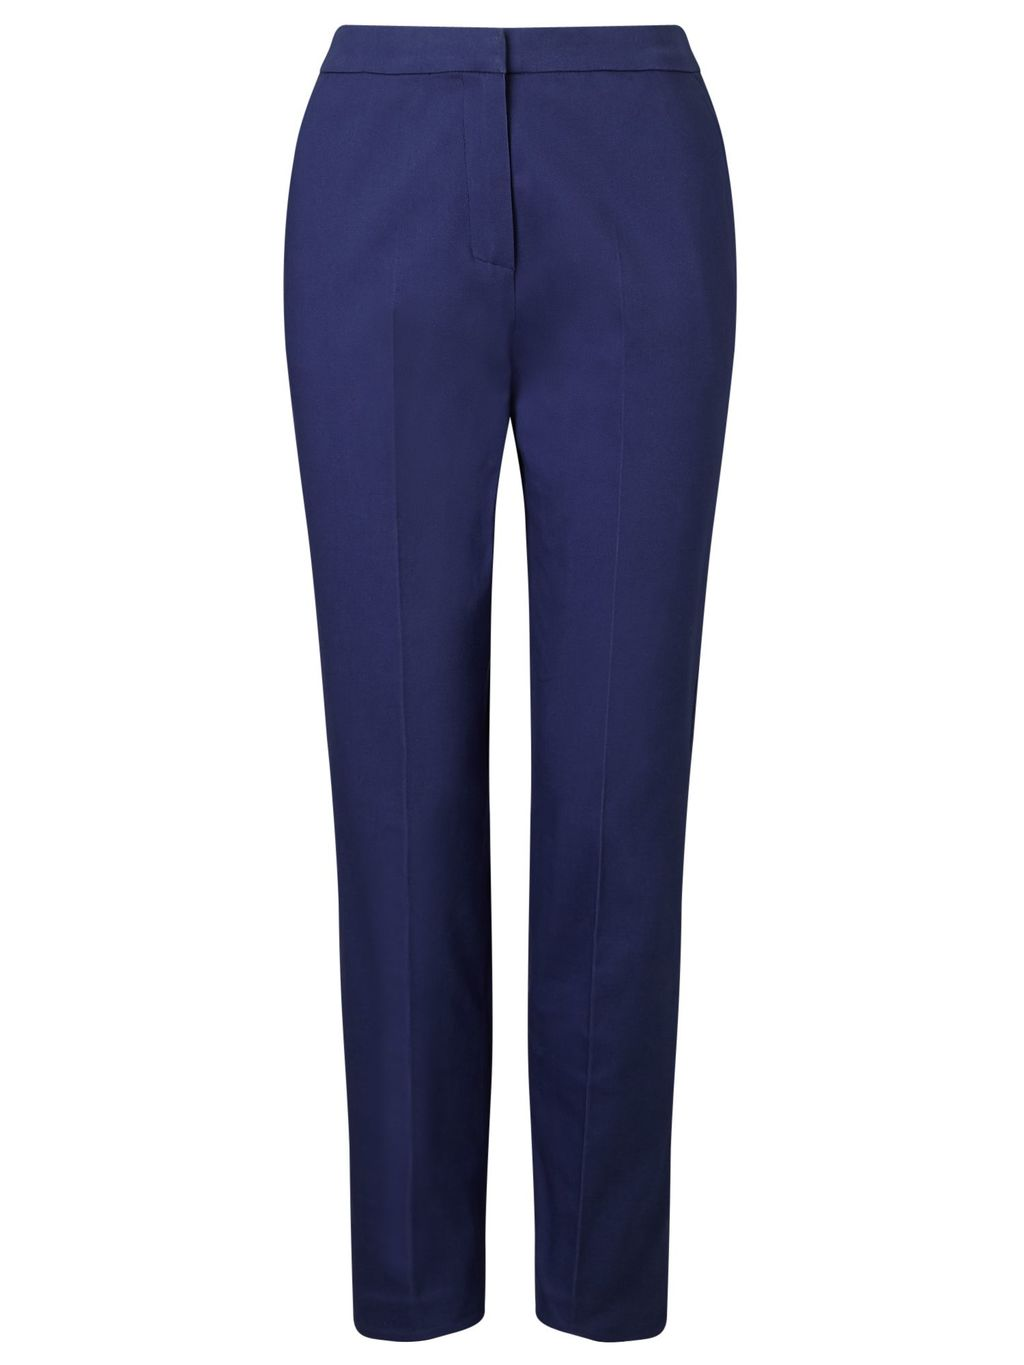 Item Chinos, Navy - length: standard; pattern: plain; waist: high rise; predominant colour: navy; occasions: work; style: chino; fibres: cotton - stretch; texture group: cotton feel fabrics; fit: slim leg; pattern type: fabric; season: s/s 2016